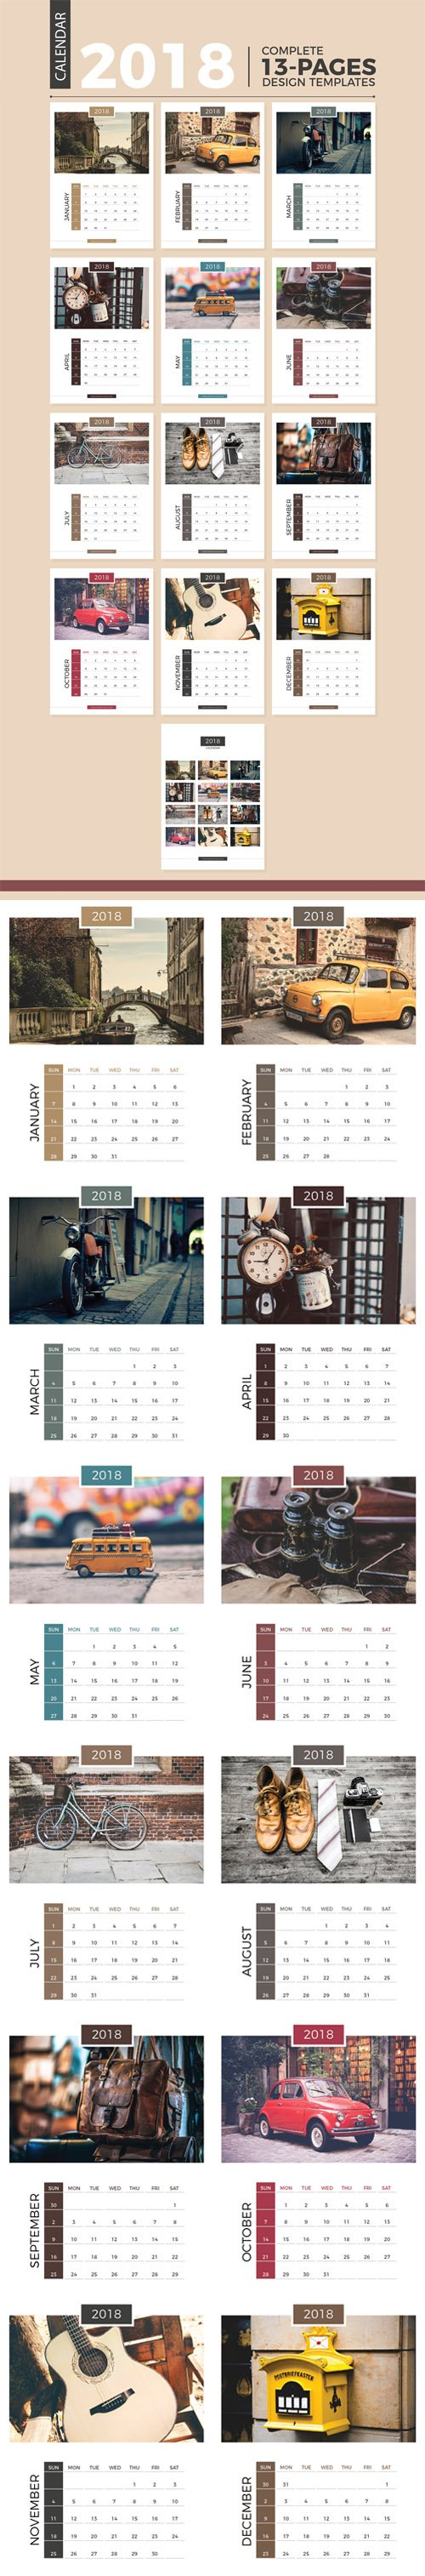 13 Pages Complete 2018 Calendar Vector Design Templates